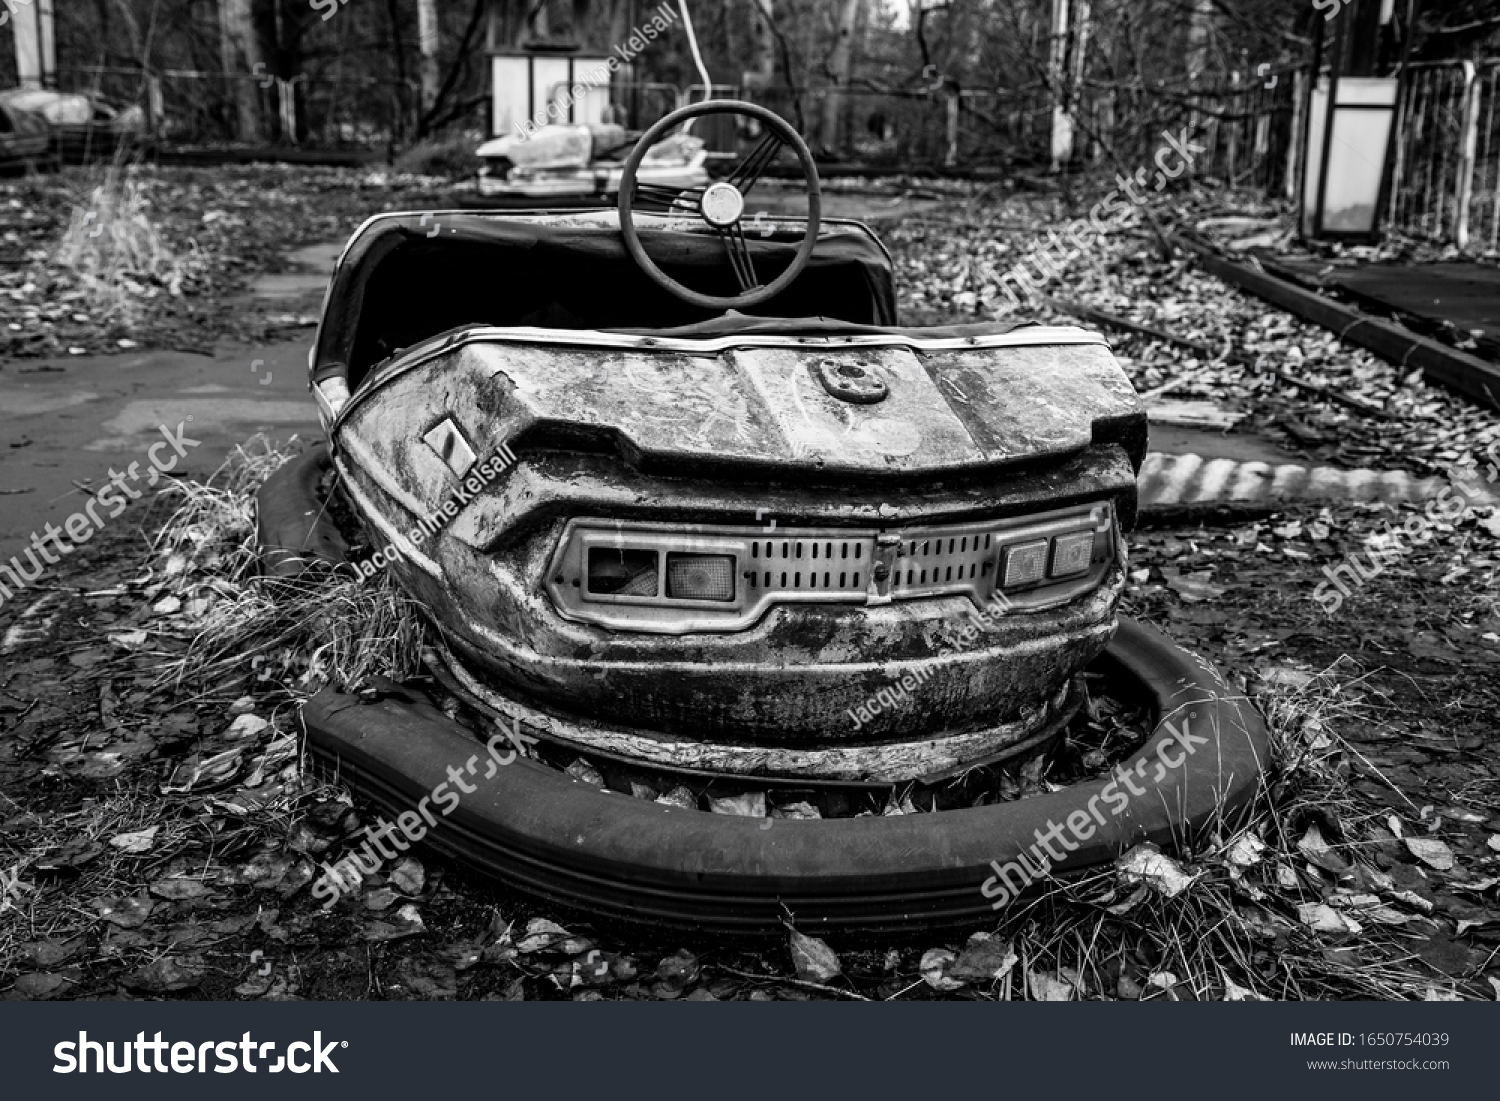 stock-photo-a-vintage-bumper-car-at-the-